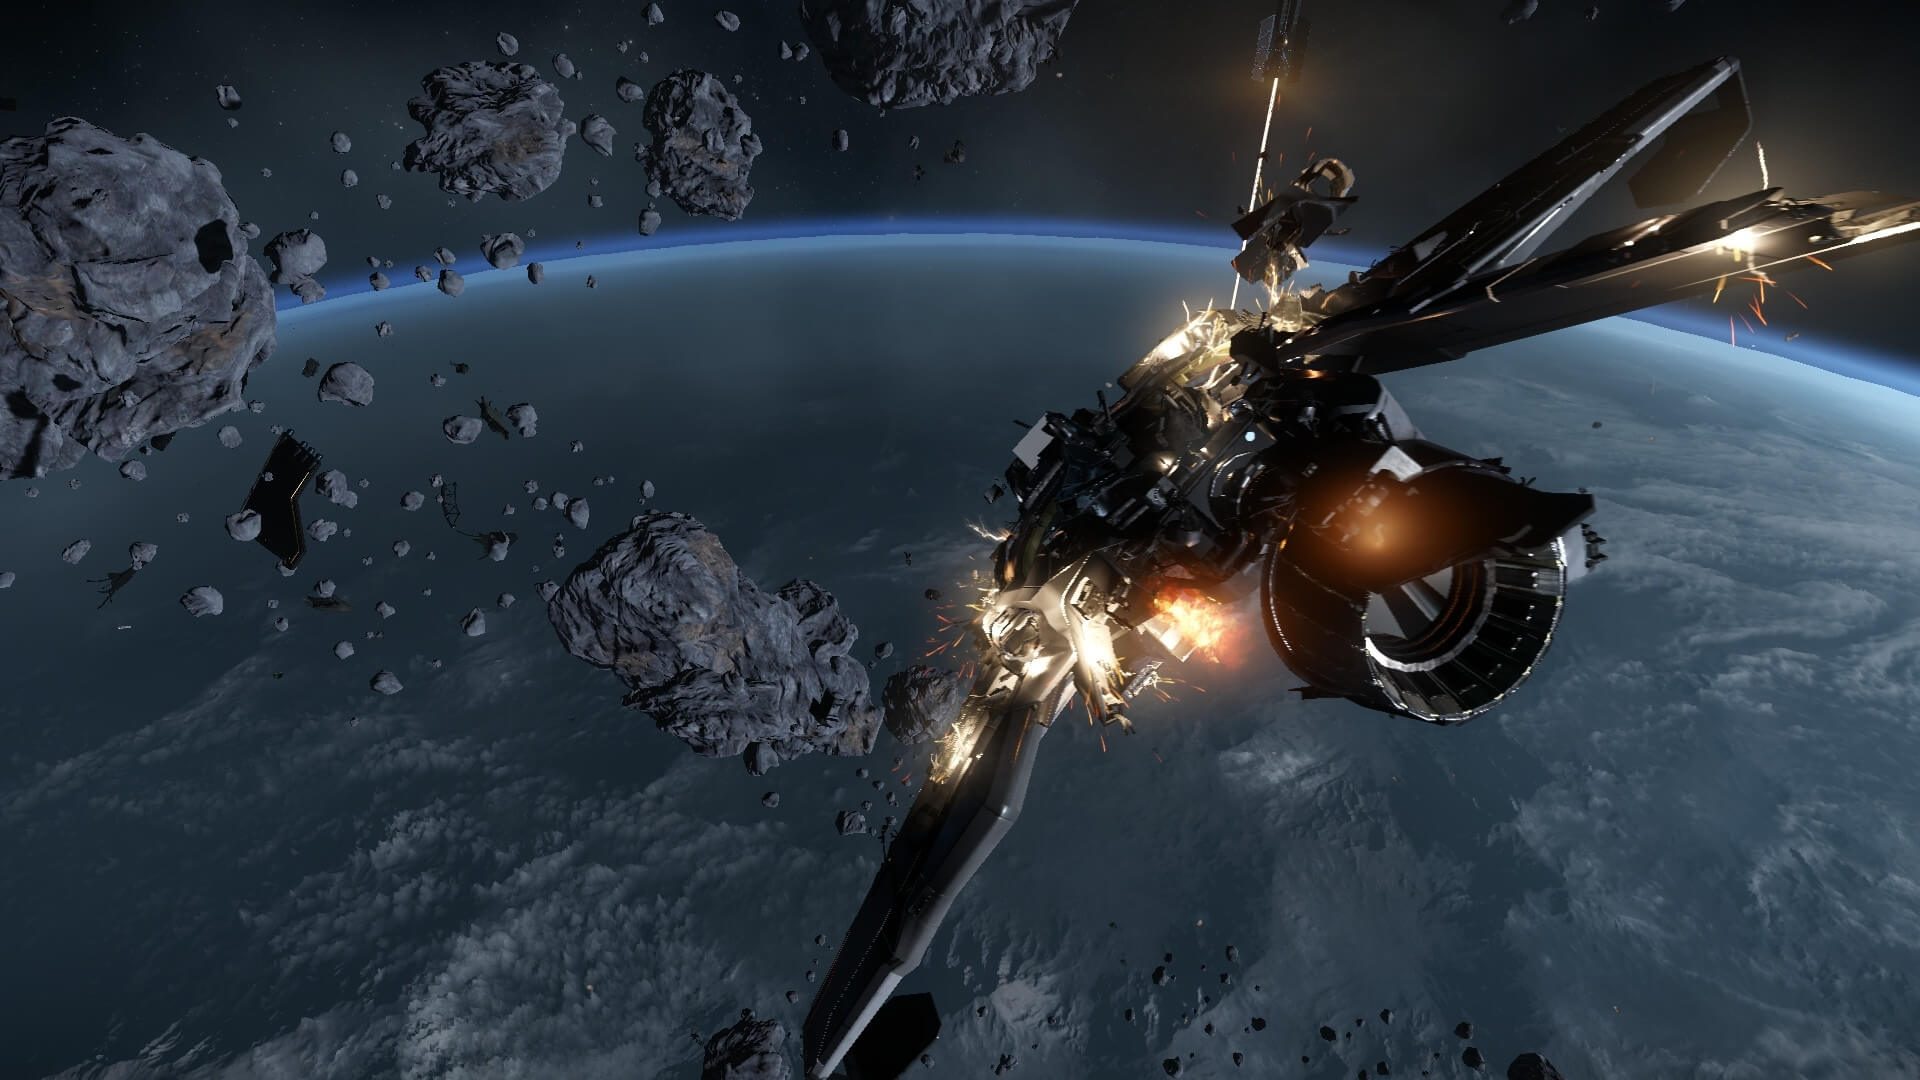 Star Citizen Ship Exp Star Citizen Looks Absolutely Astonishing In New Gameplay Demo